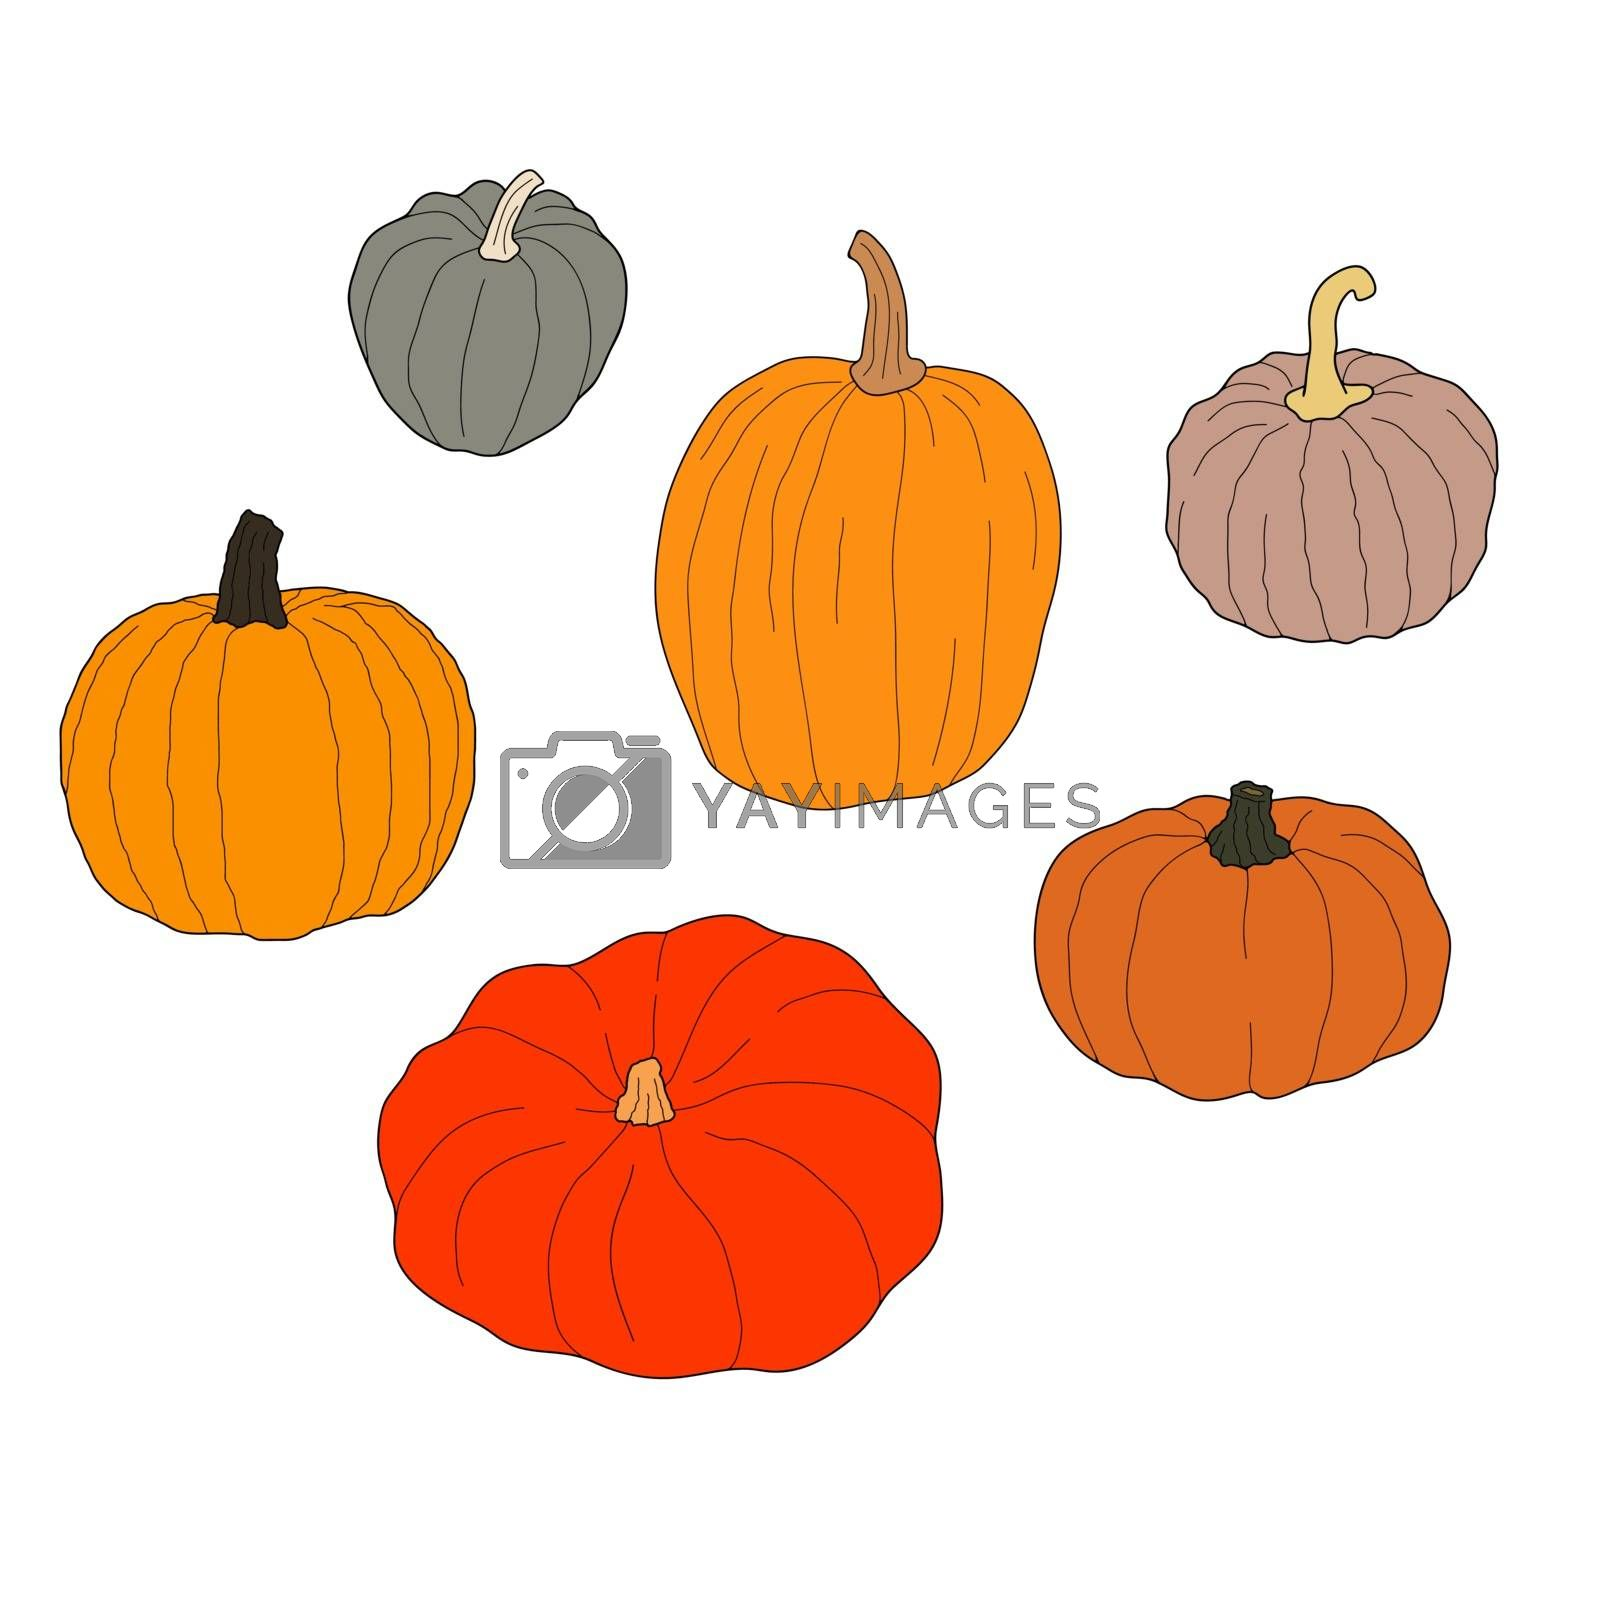 Pumpkin colorful set vector illustration isolated on white background. Healthy vegetarian food. Doodle style. Decoration for greeting cards, posters, patches, prints for clothes, emblems.